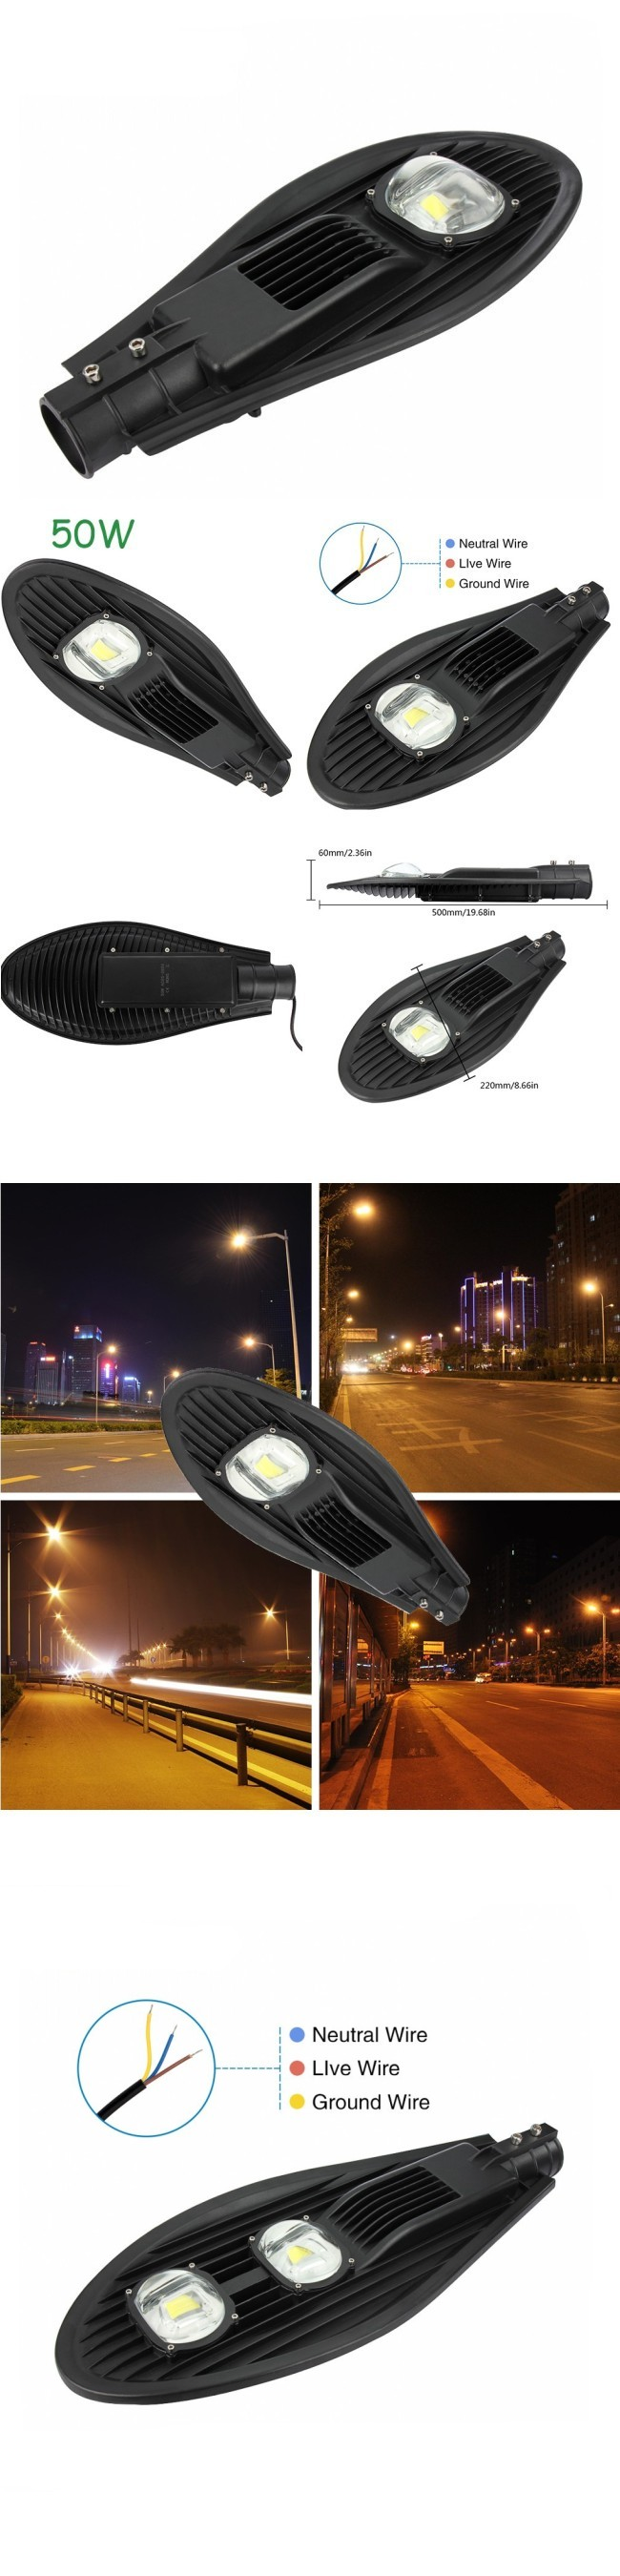 Die Cast Aluminum 30W LED Street Light Outdoor LED Lamp Waterproof